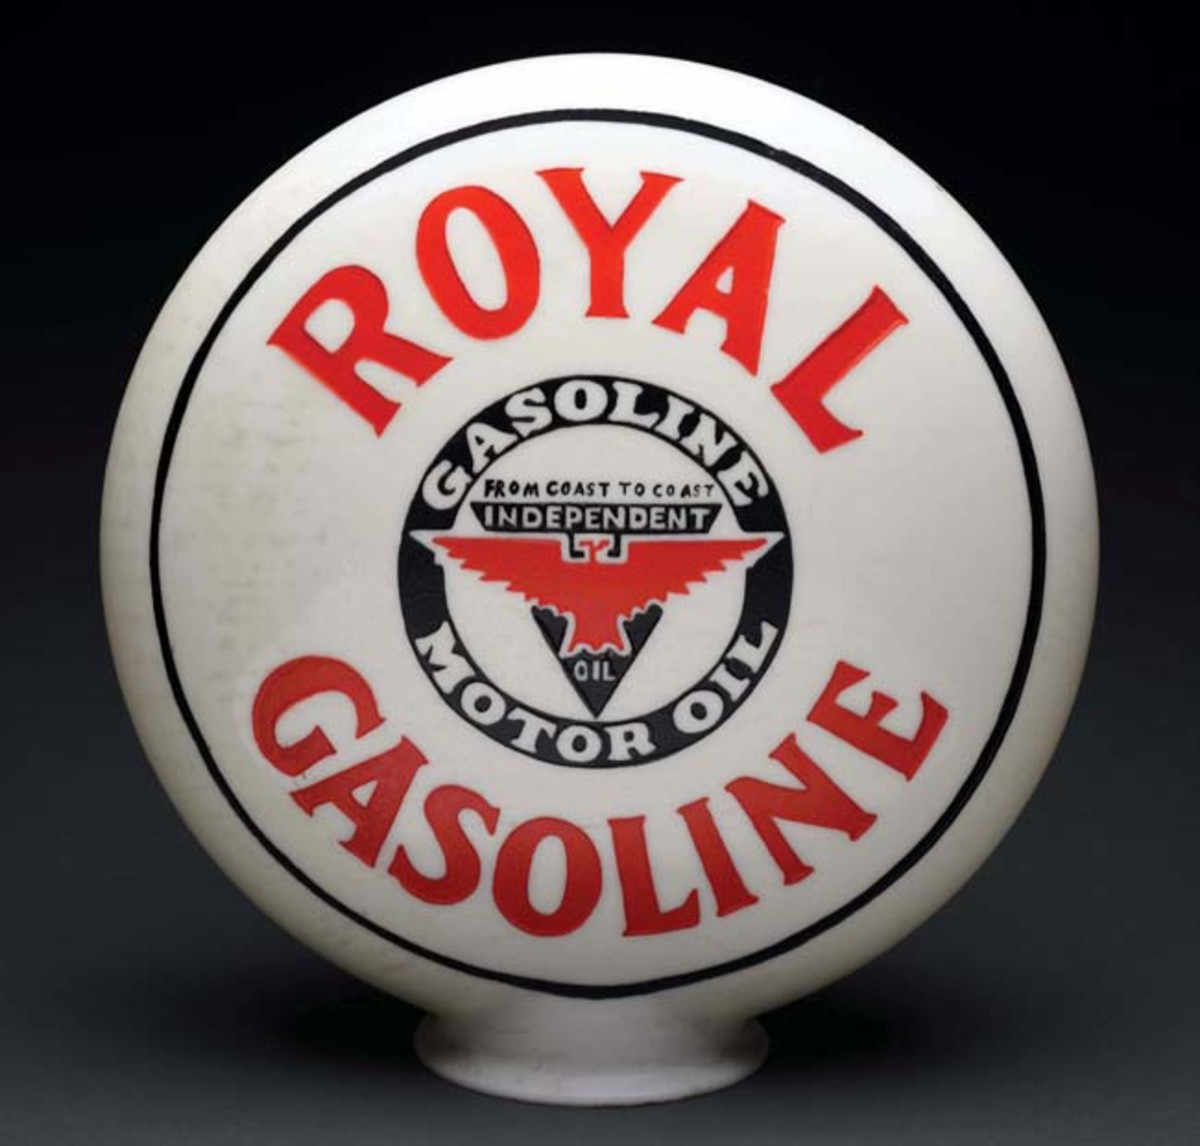 Royal Gasoline one-piece etched globe with 'Independent' logo. Estimate: $4,000-$6,000. Photo - Morphy Auctions